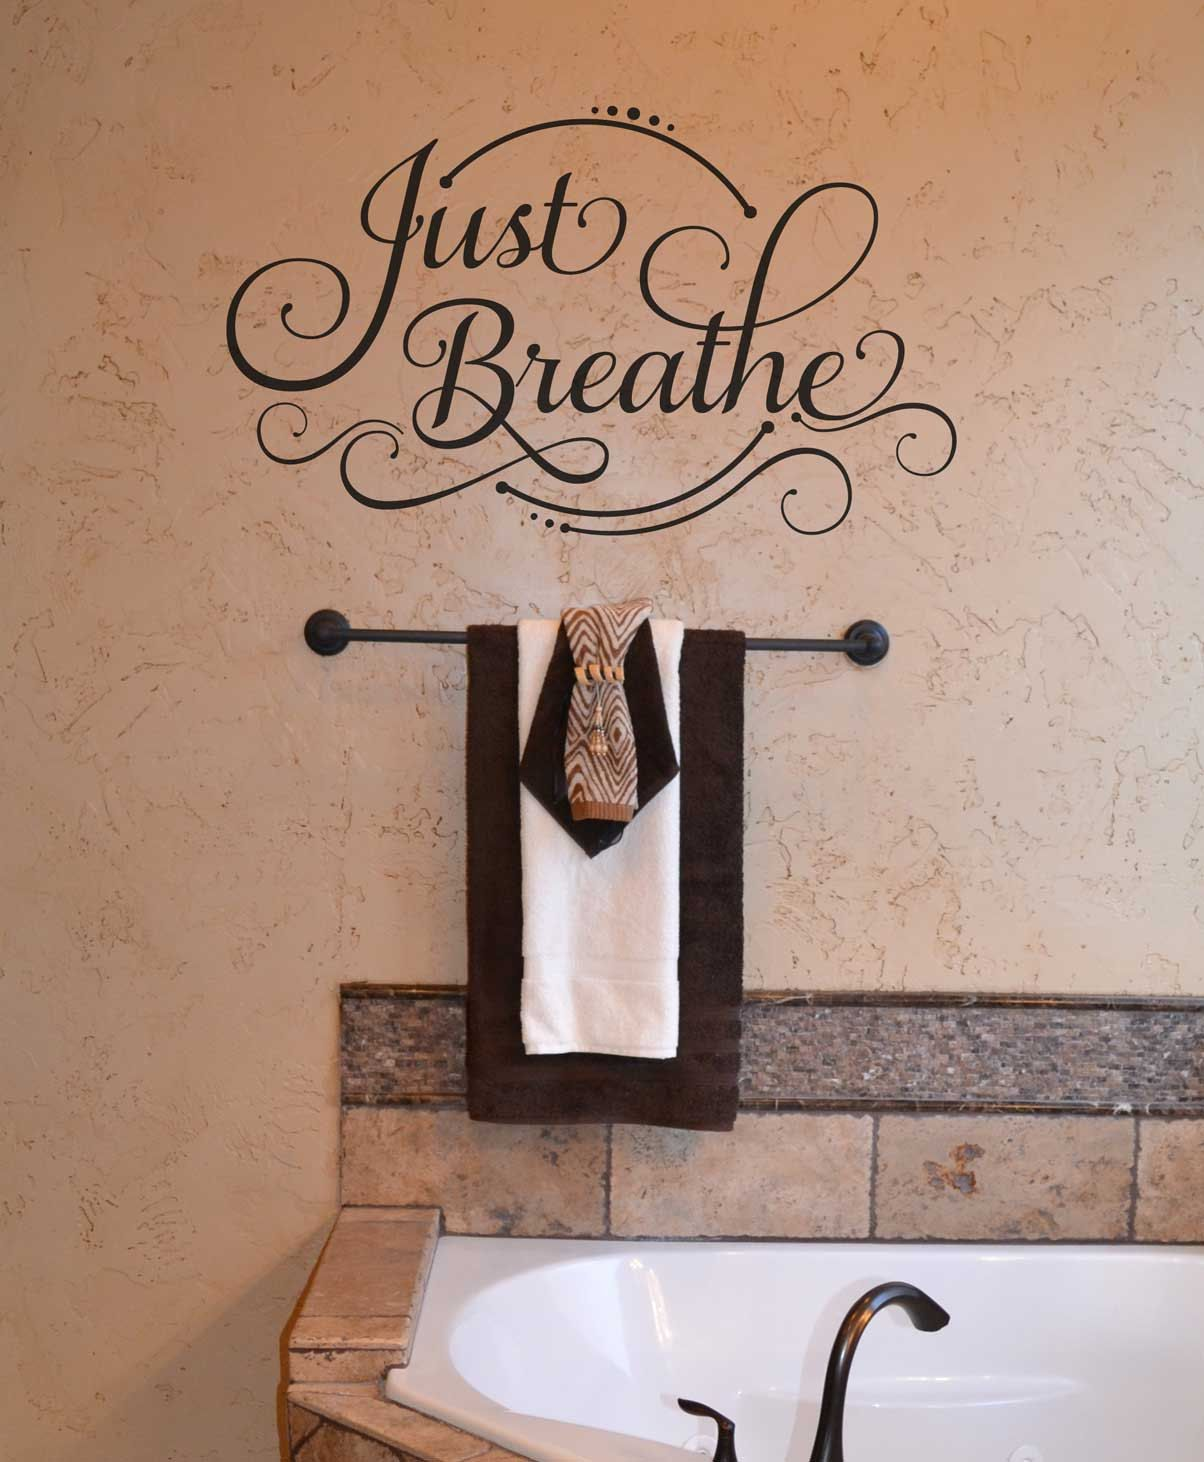 Just breathe kw custom vinyl lettering wall words stickers home